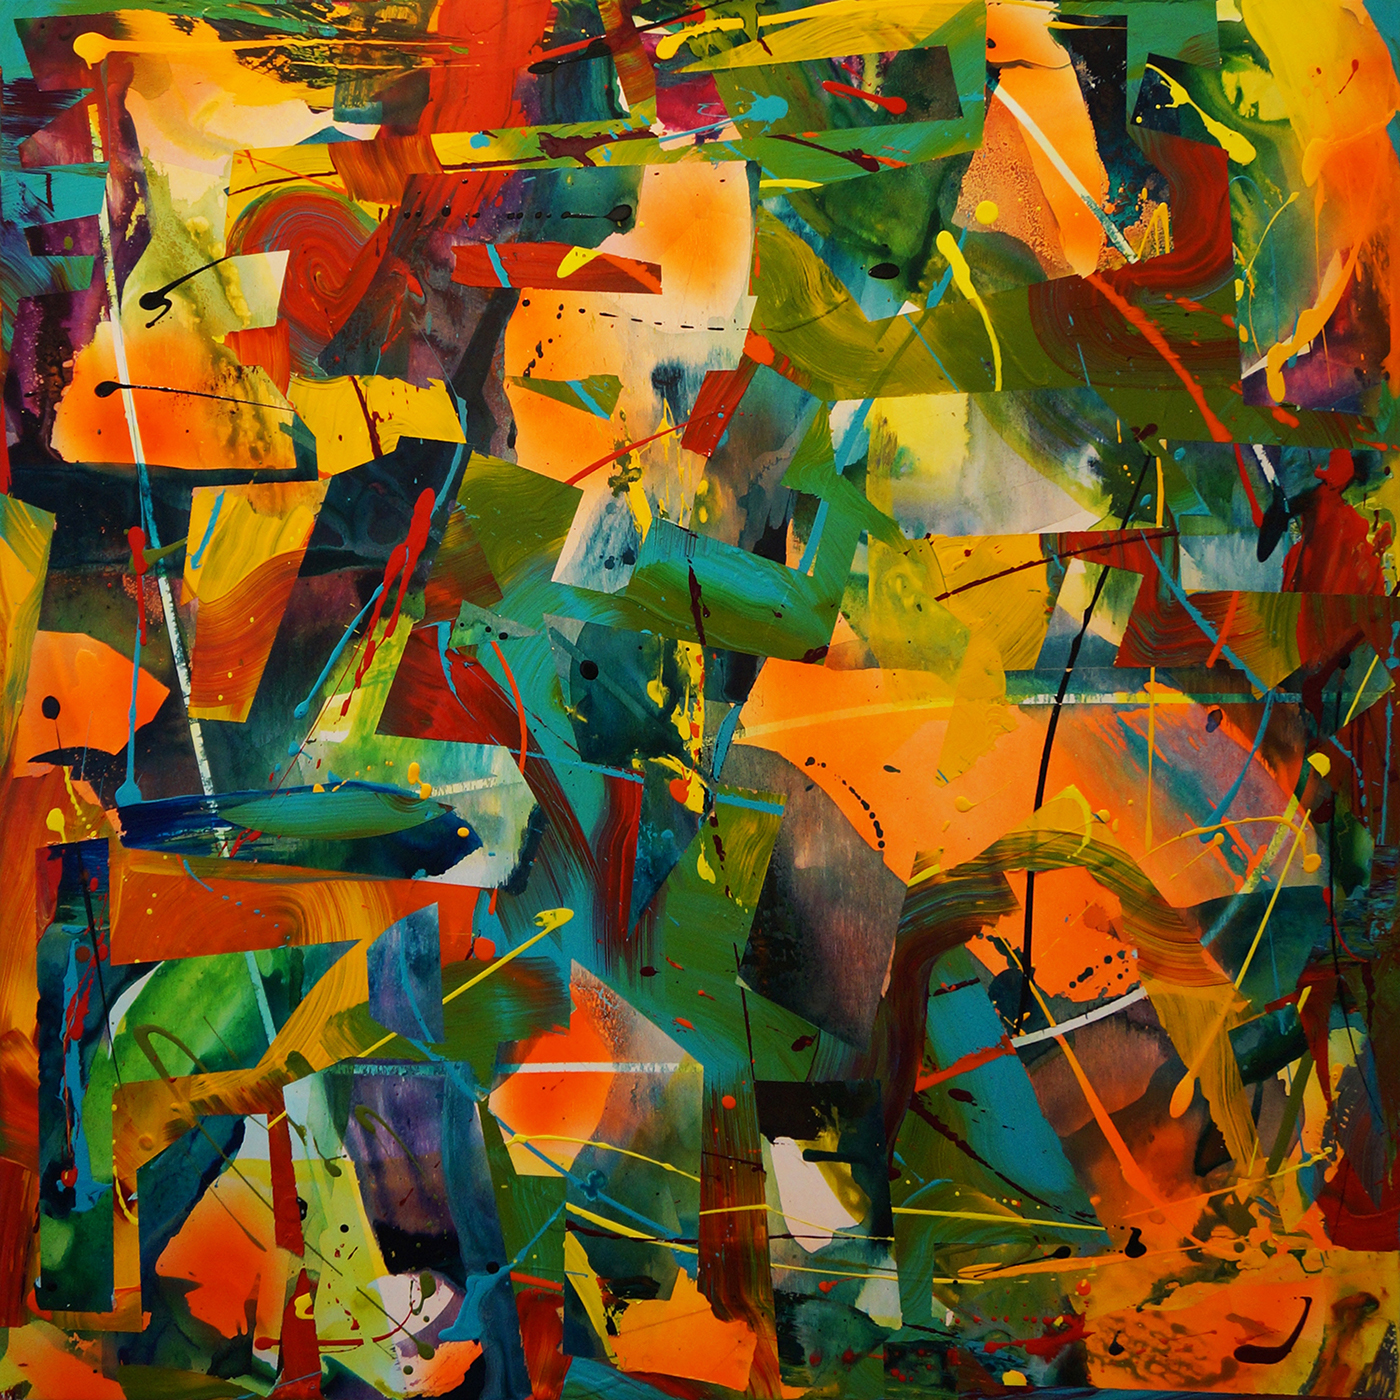 art artist Toronto Canada Canadian Urban Expression Assemblage colour bright vibrant energetic Dynamic abstract face